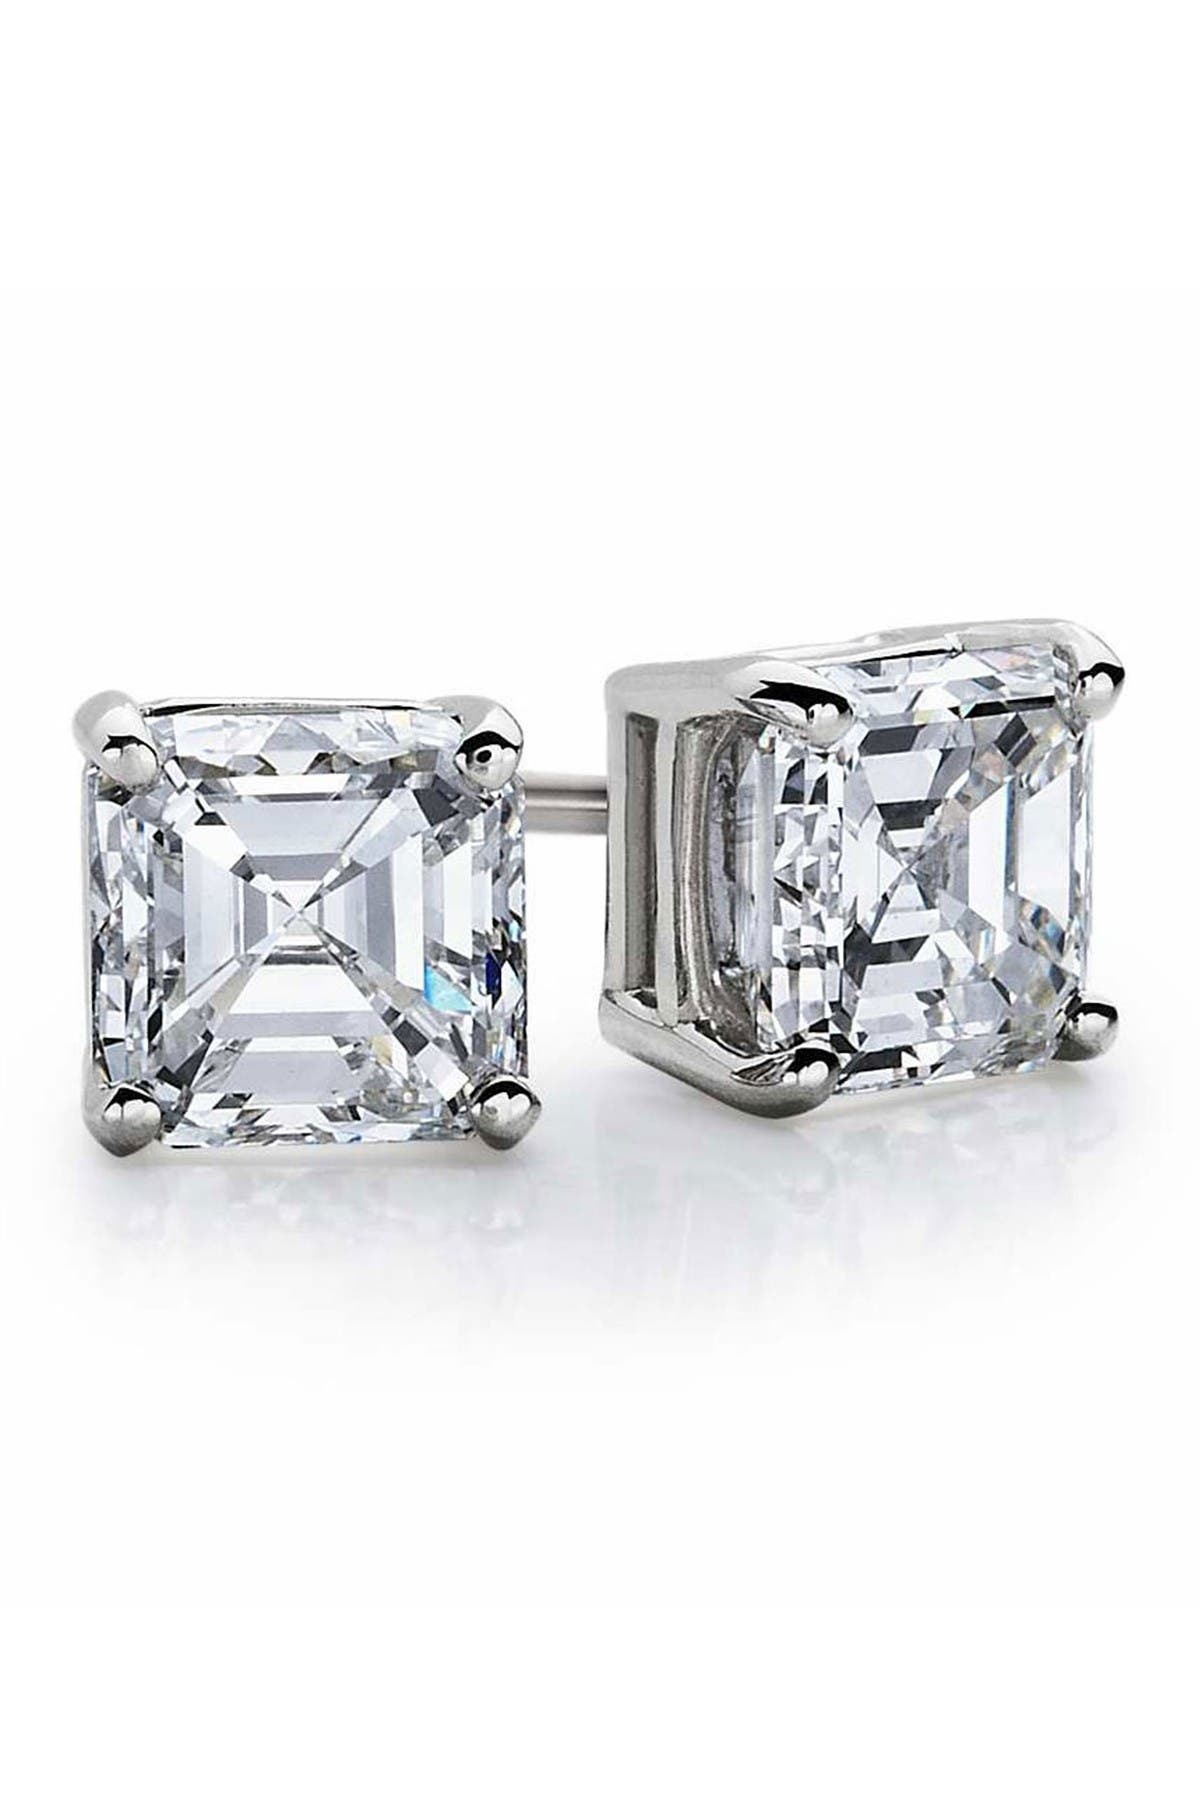 Image of Suzy Levian Sterling Silver Asscher-Cut White CZ Stud Earrings